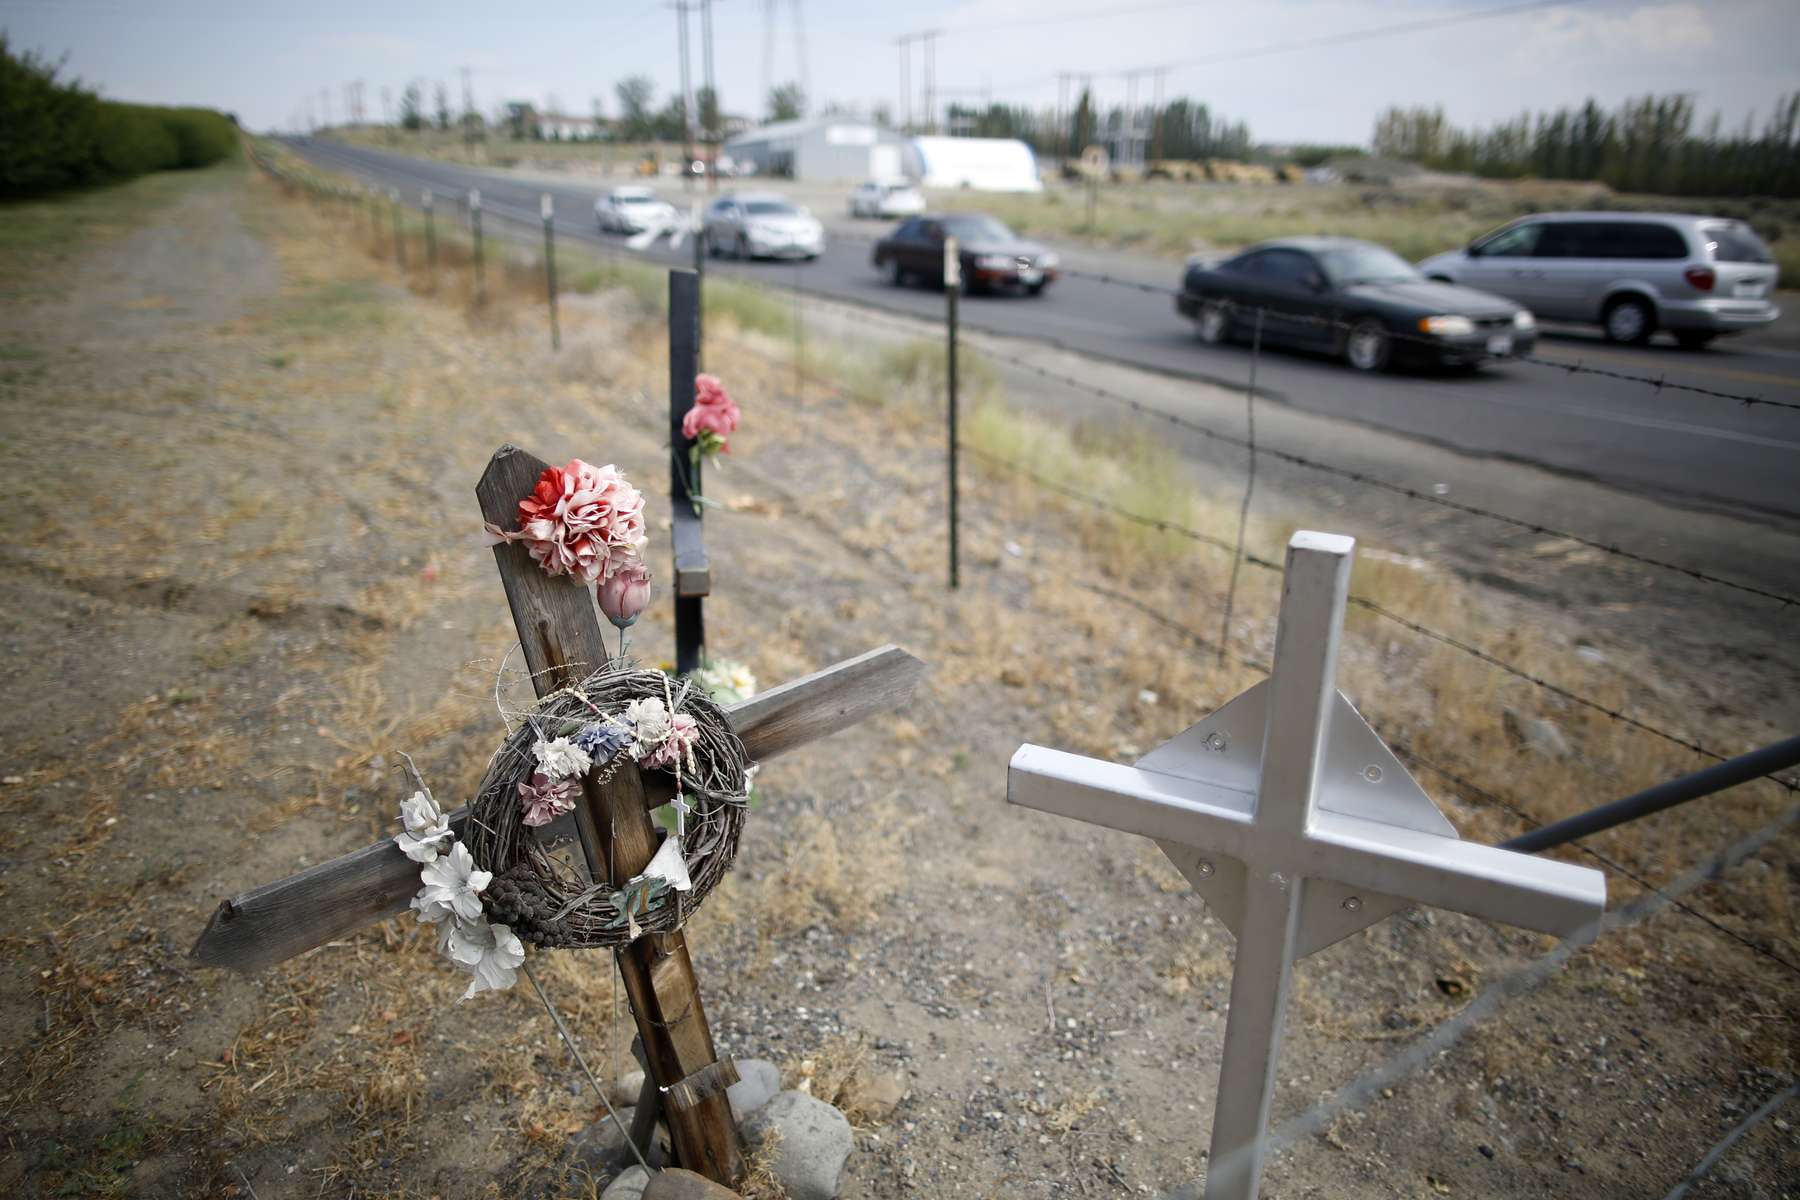 Crosses honoring people who have been killed at the intersection of two major roads are seen in Mattawa, Washington August 23, 2013. Traffic violations run rampant in the town where a large percentage of the residents are not US citizens and many do not have drivers licenses or insurance.